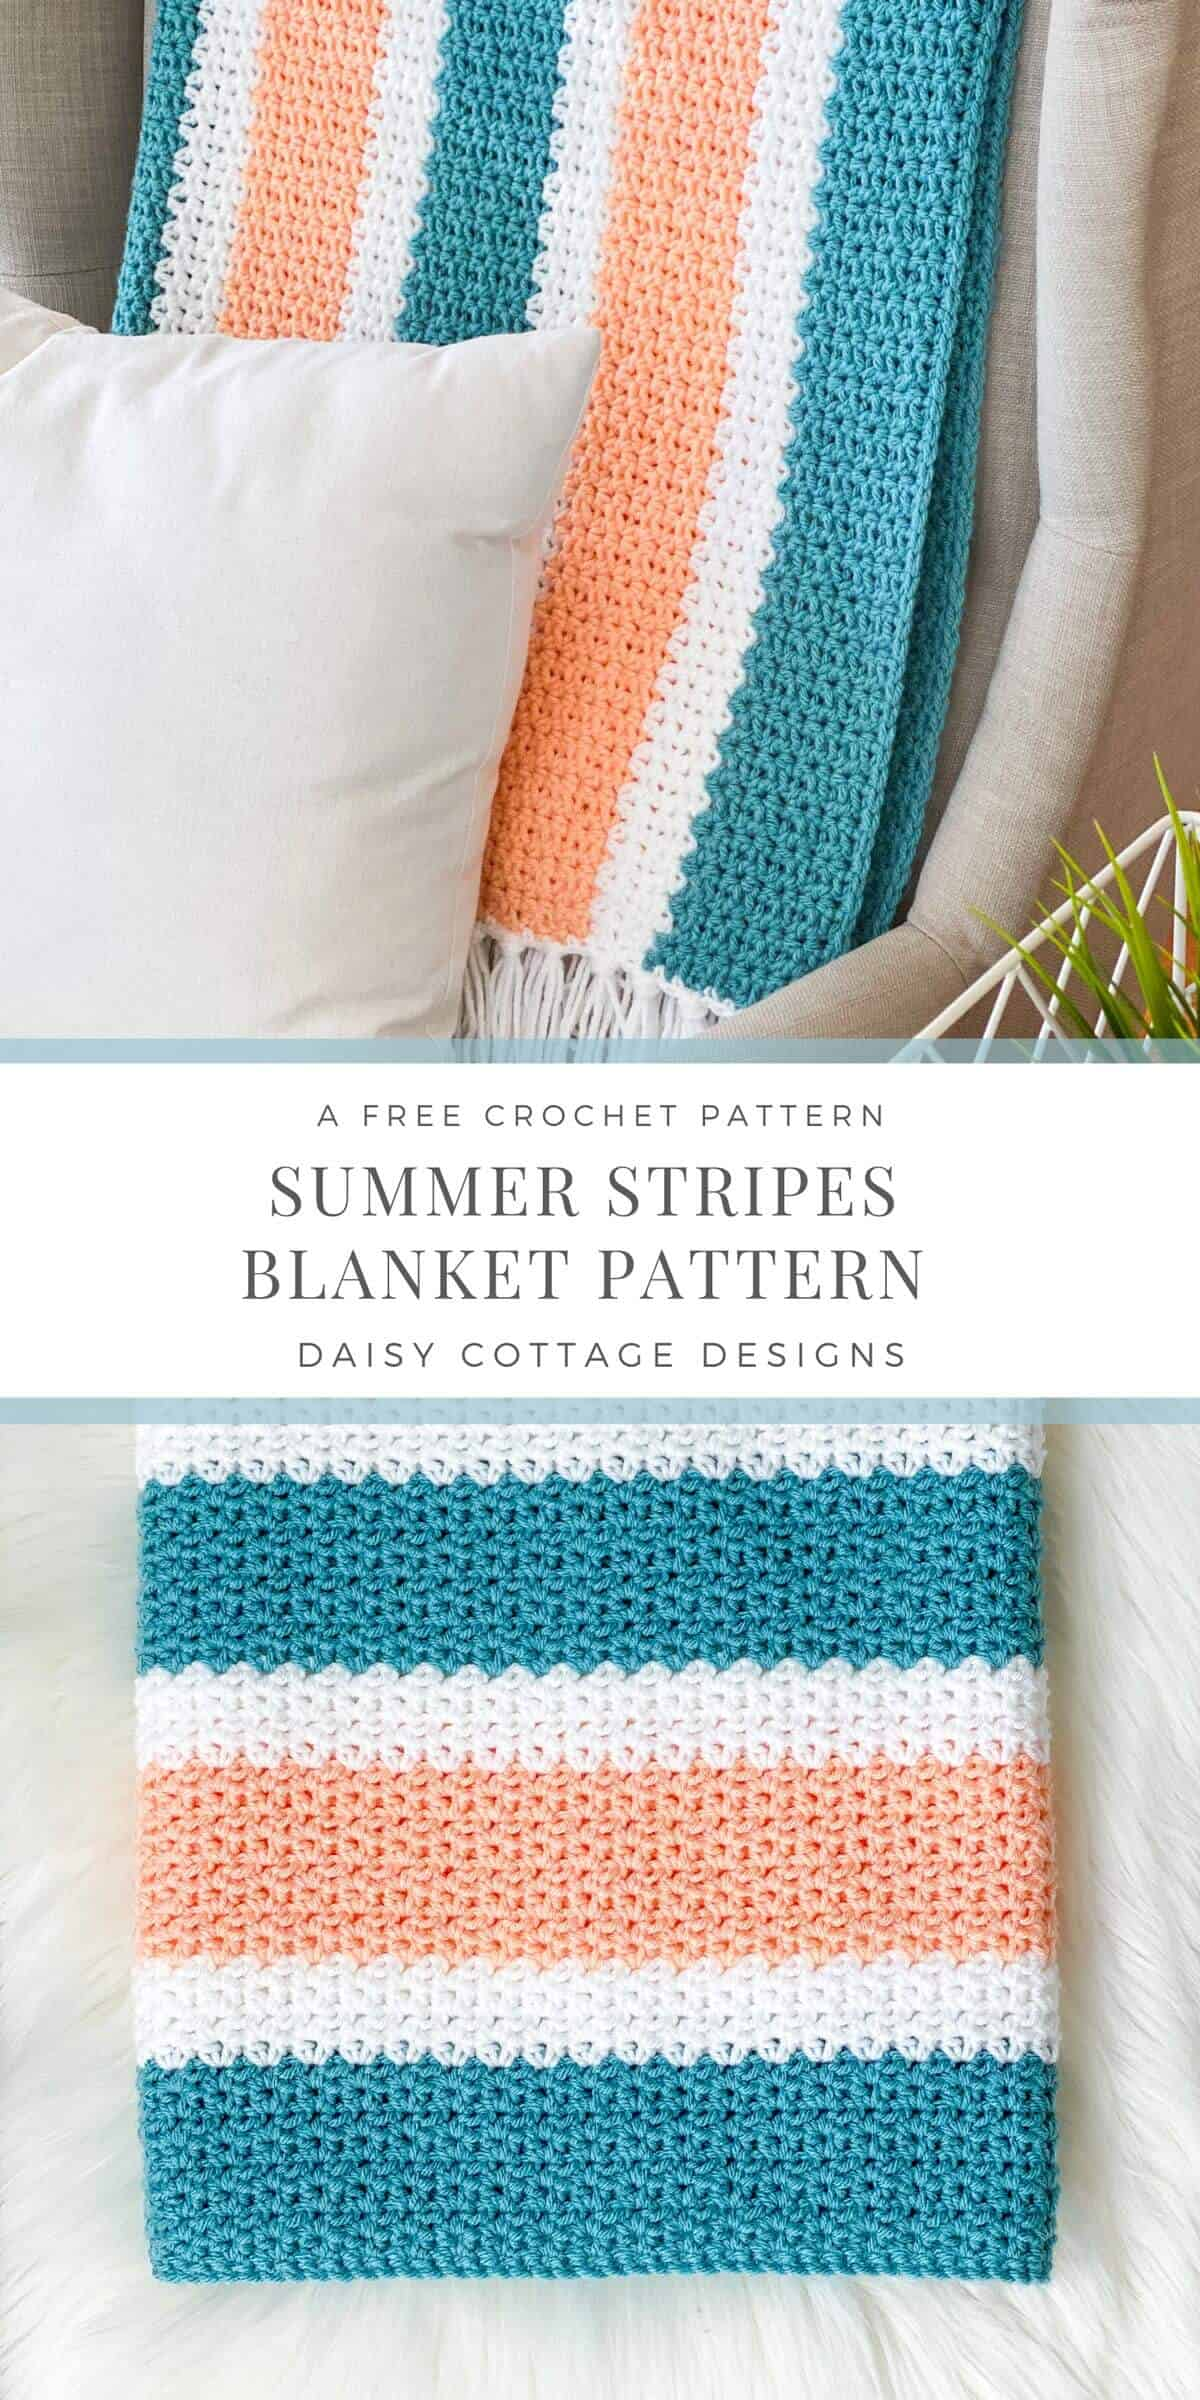 V Stitch Crochet at its finest! Learn how to create this gorgeous crochet blanket using use this quick and easy free crochet pattern.